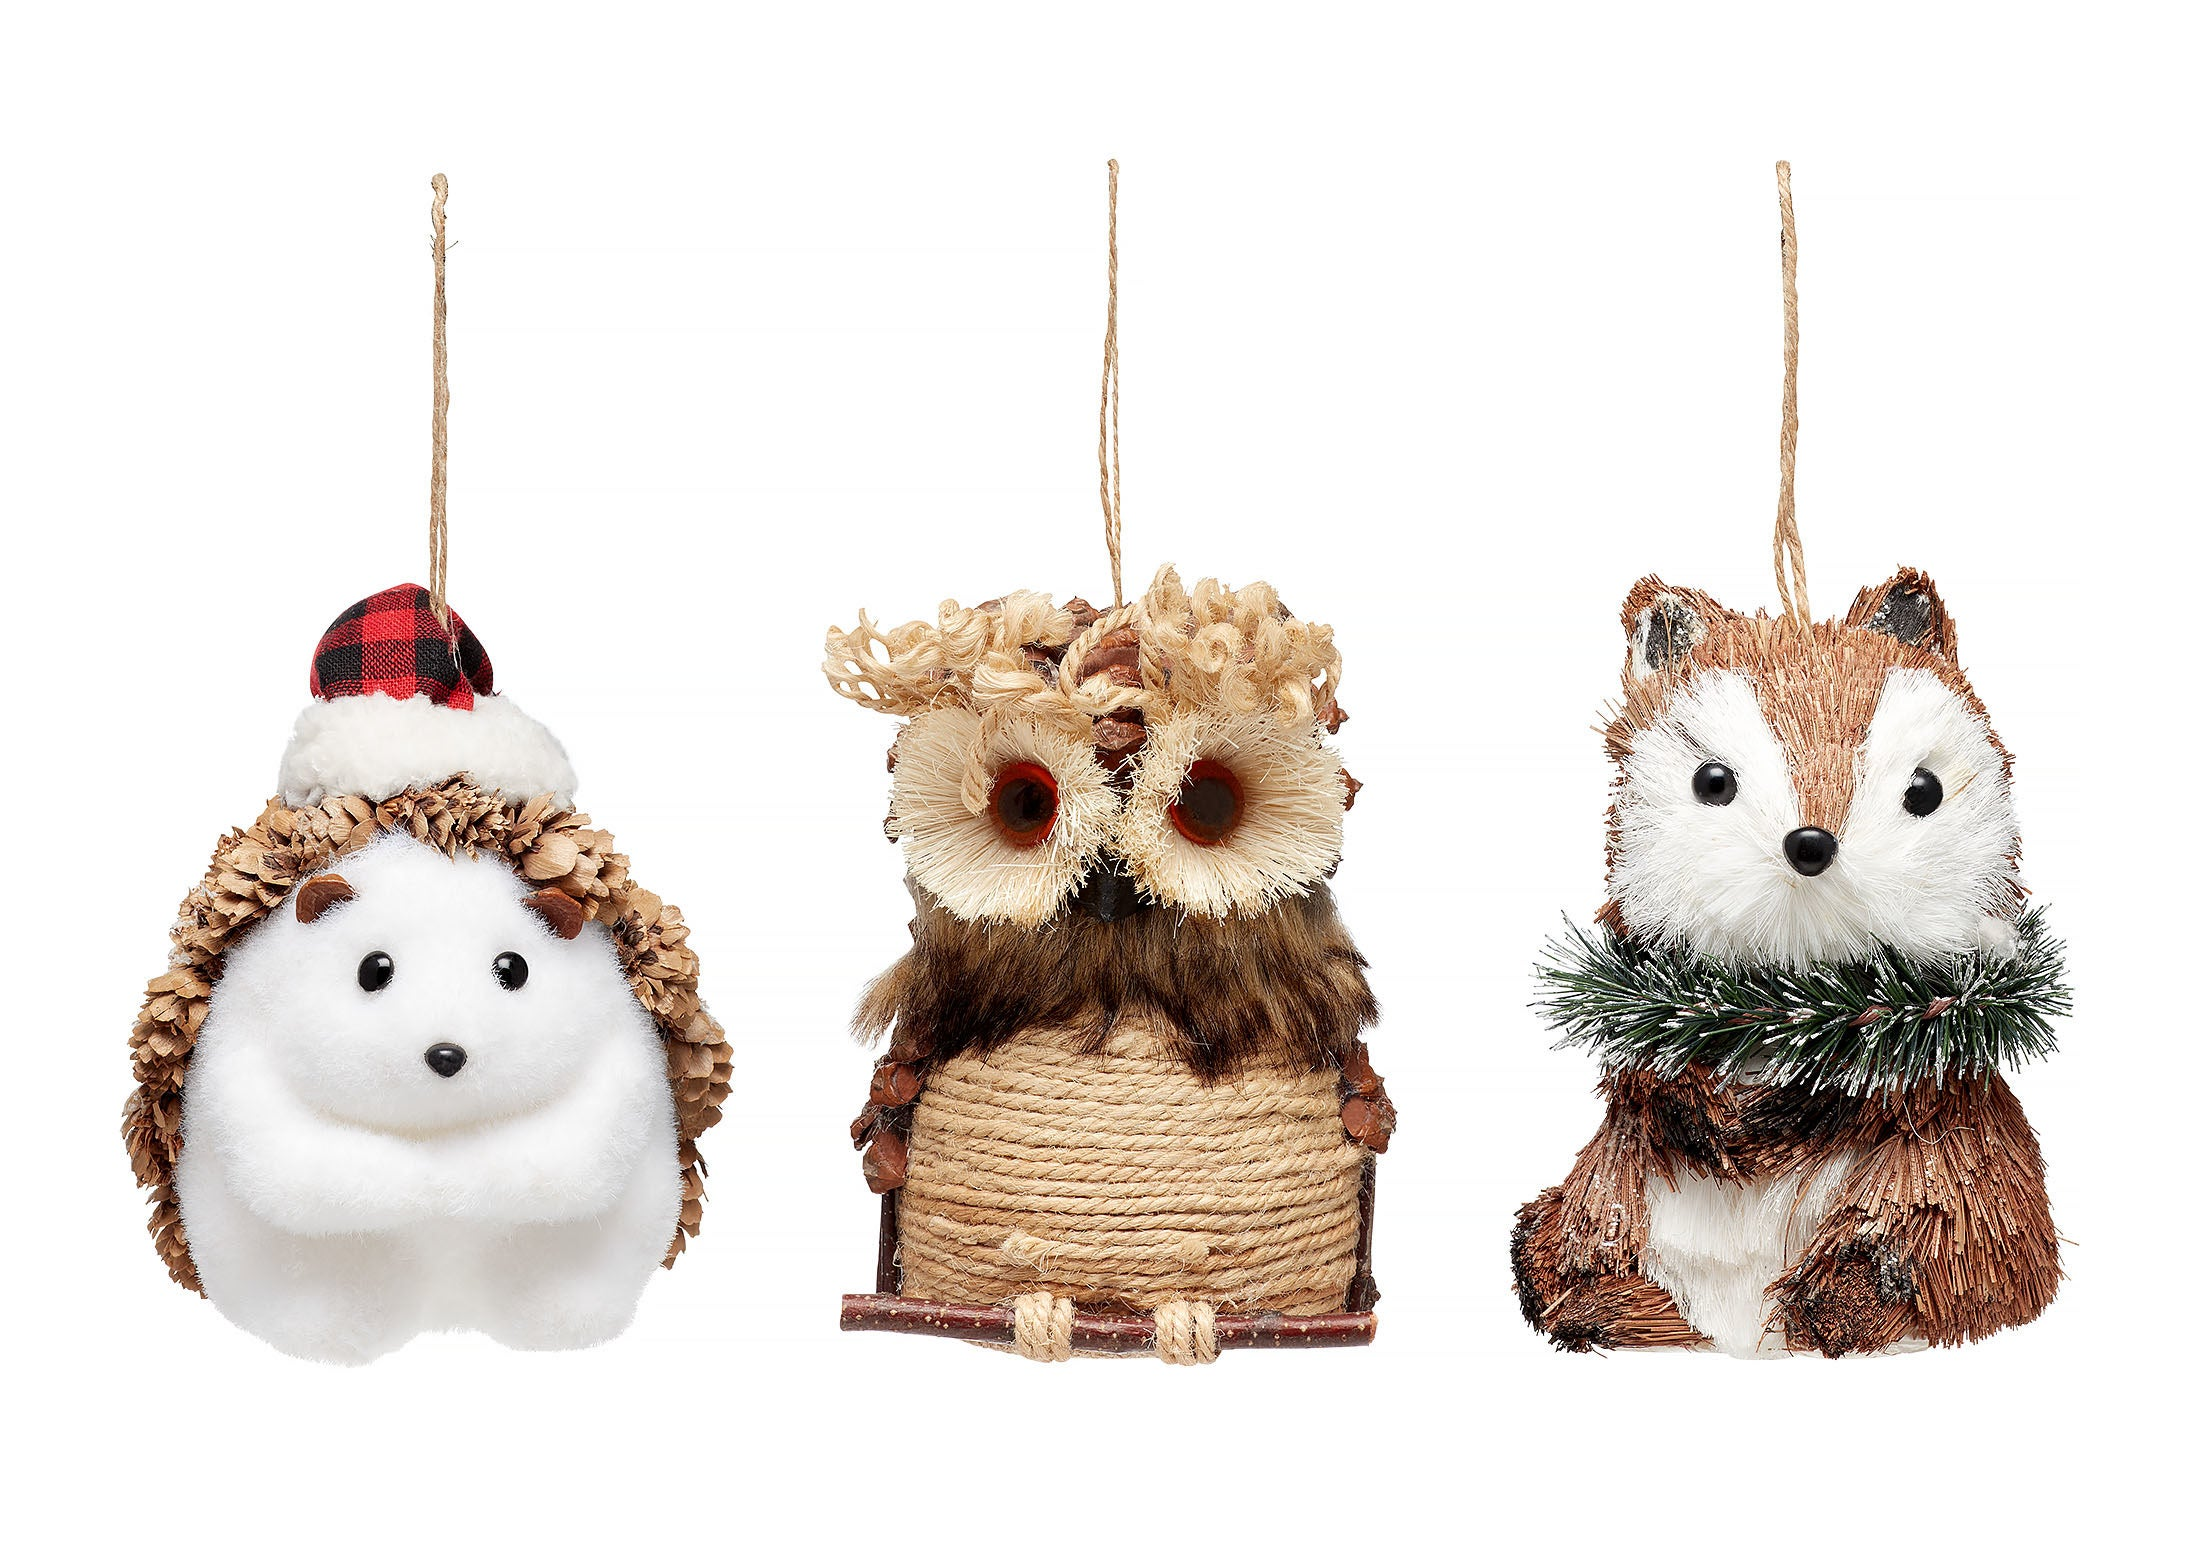 The three woodland animals ornaments